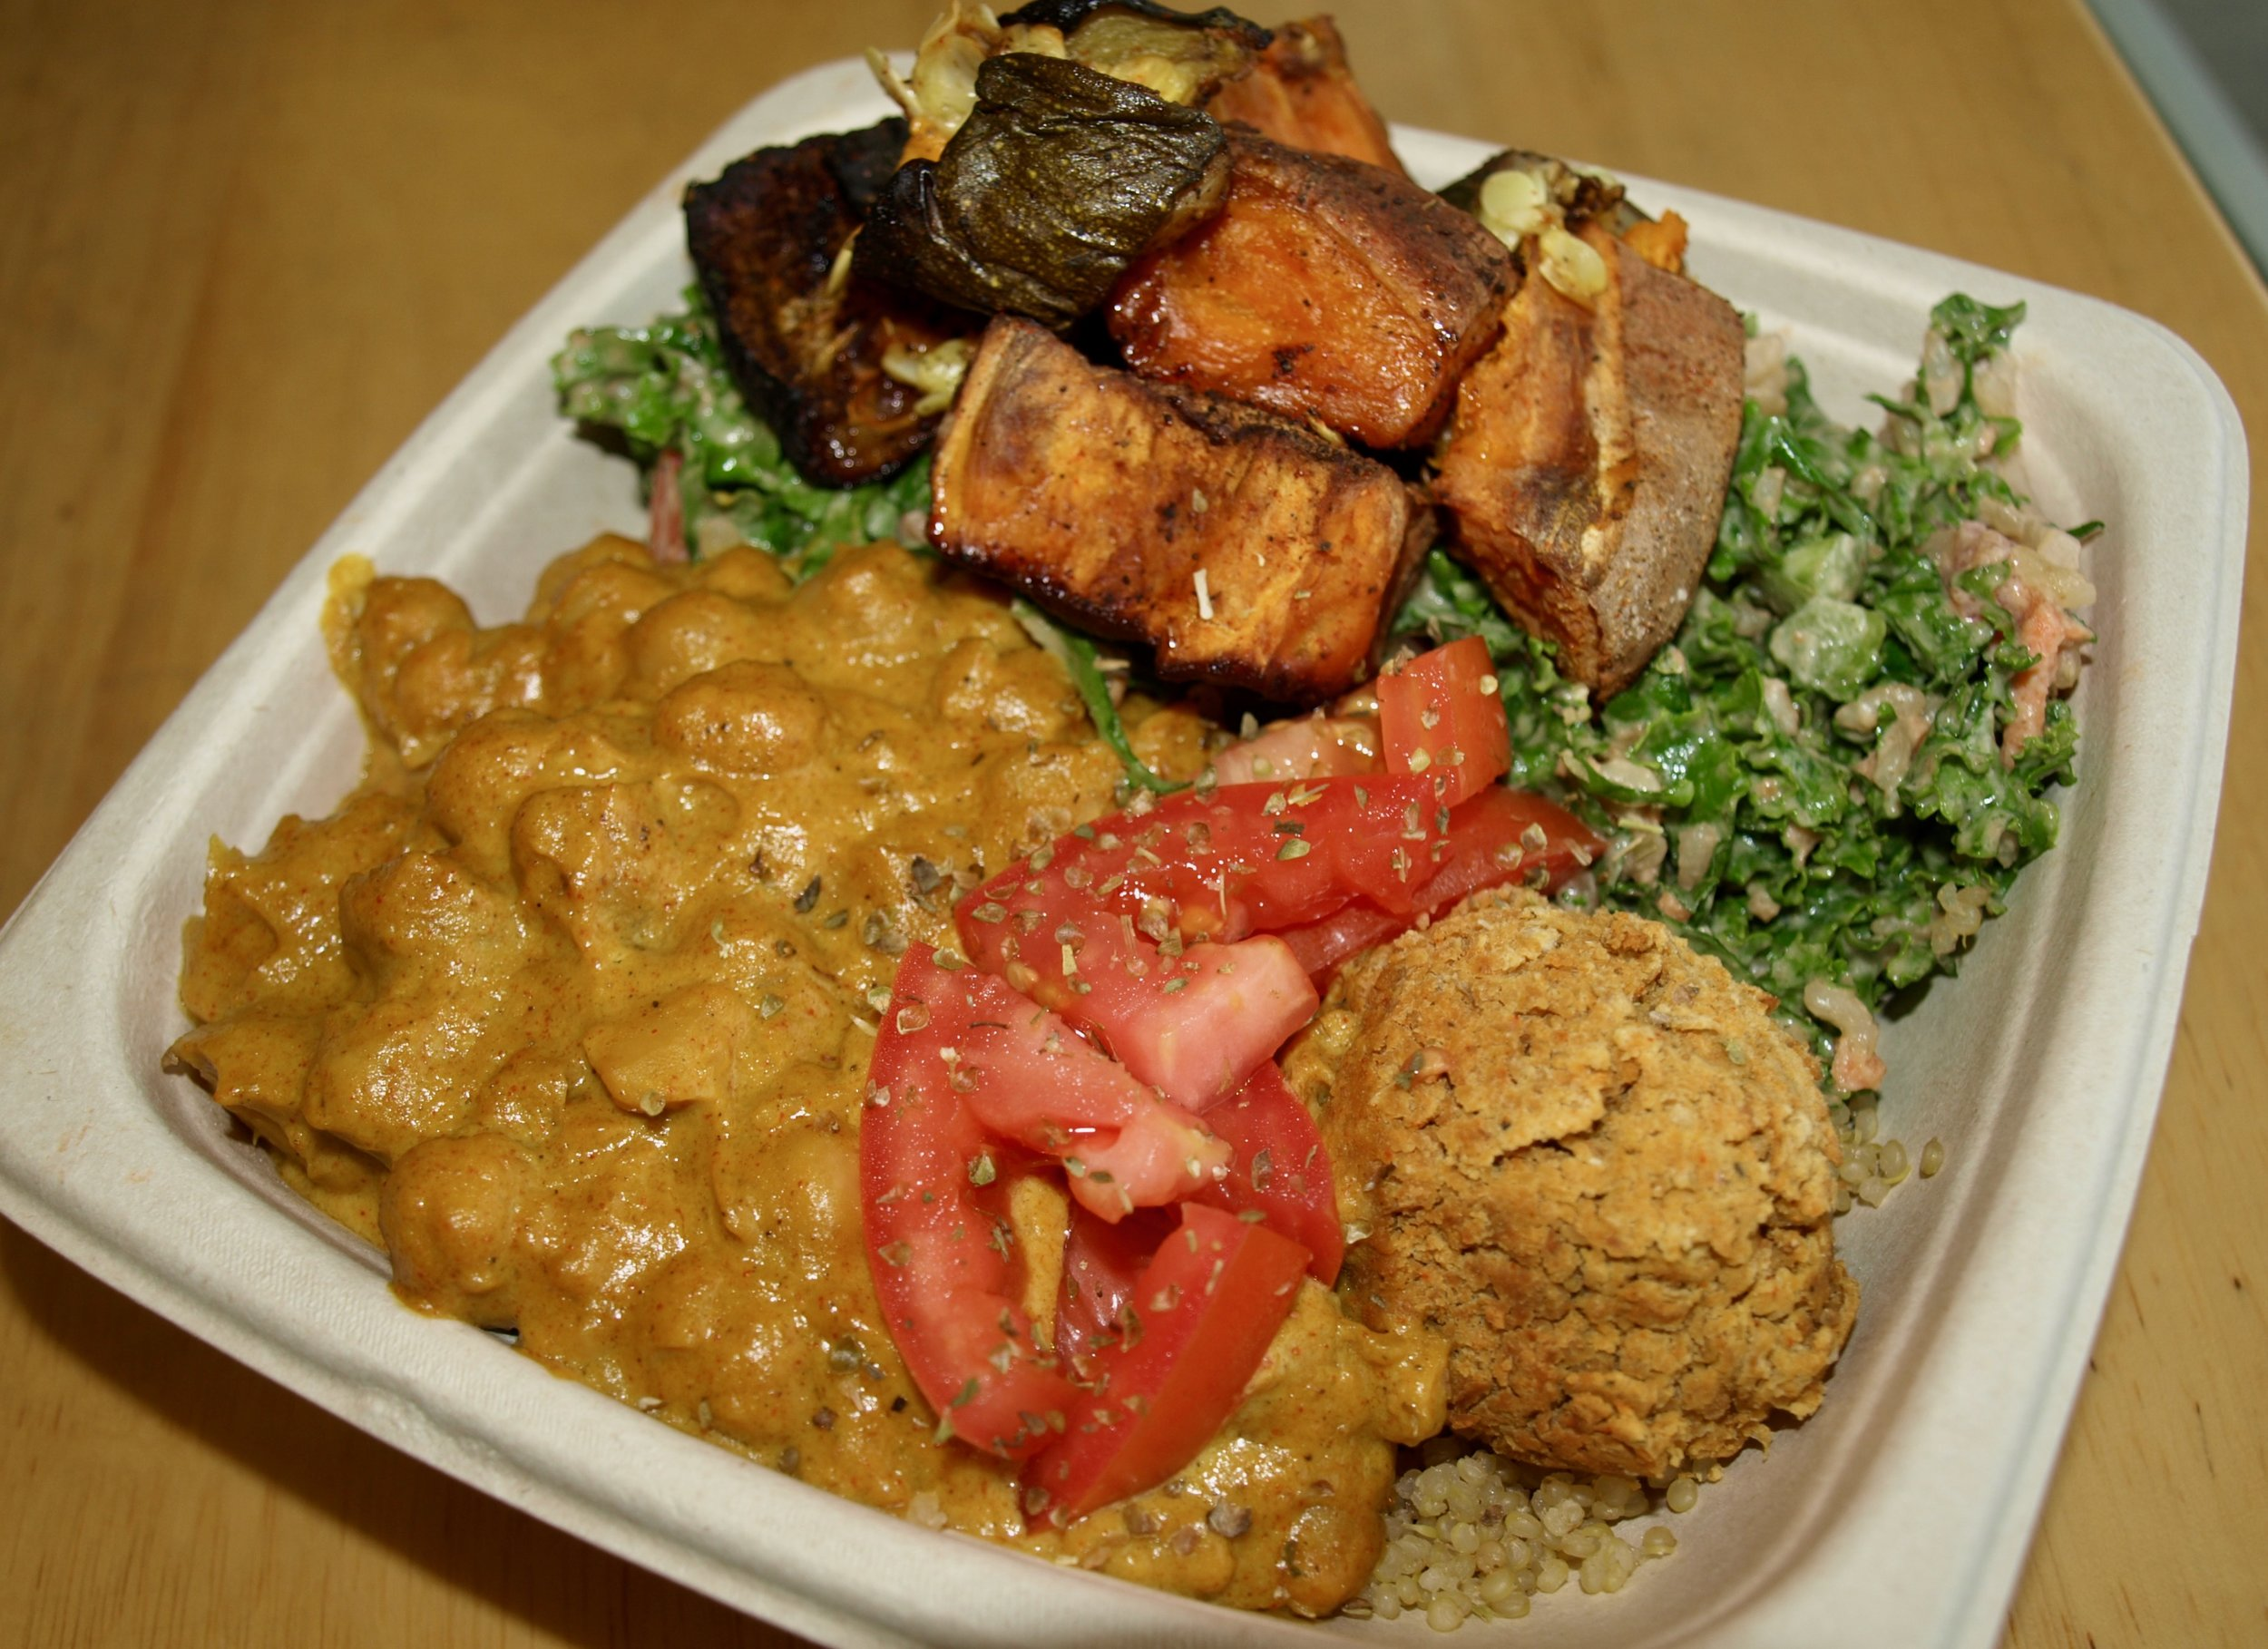 Half & half of Southern charm (kale, cilantro, brown rice, tomato, red onion, carrots, topped with roasted veggies, and masala bowl (chickpea masala, tomato, falafel, sunflower tahini).